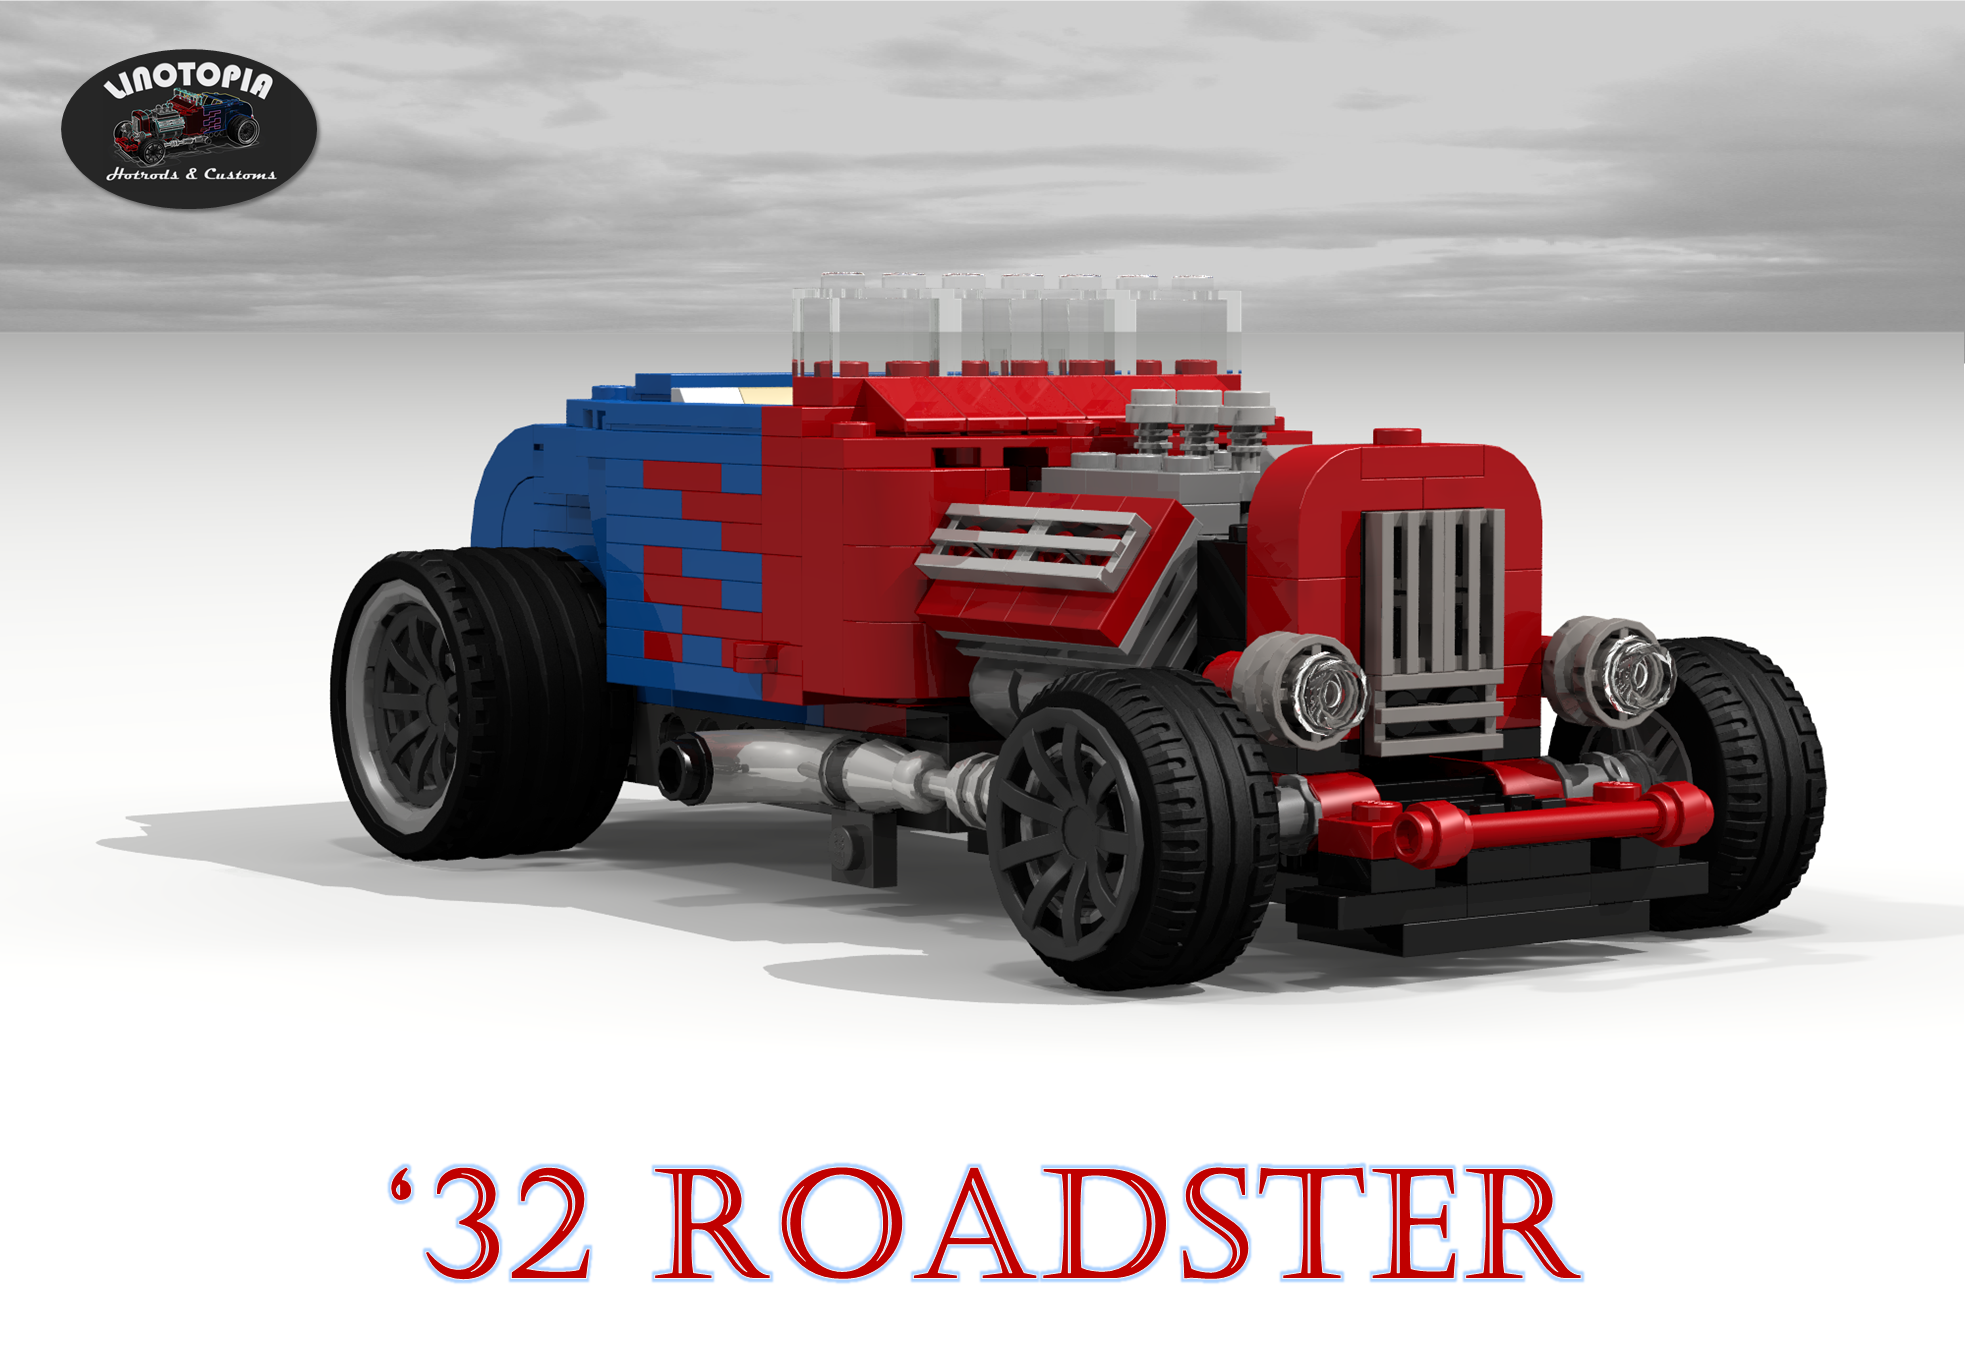 1932_linotopia_ford_v8_roadster.png